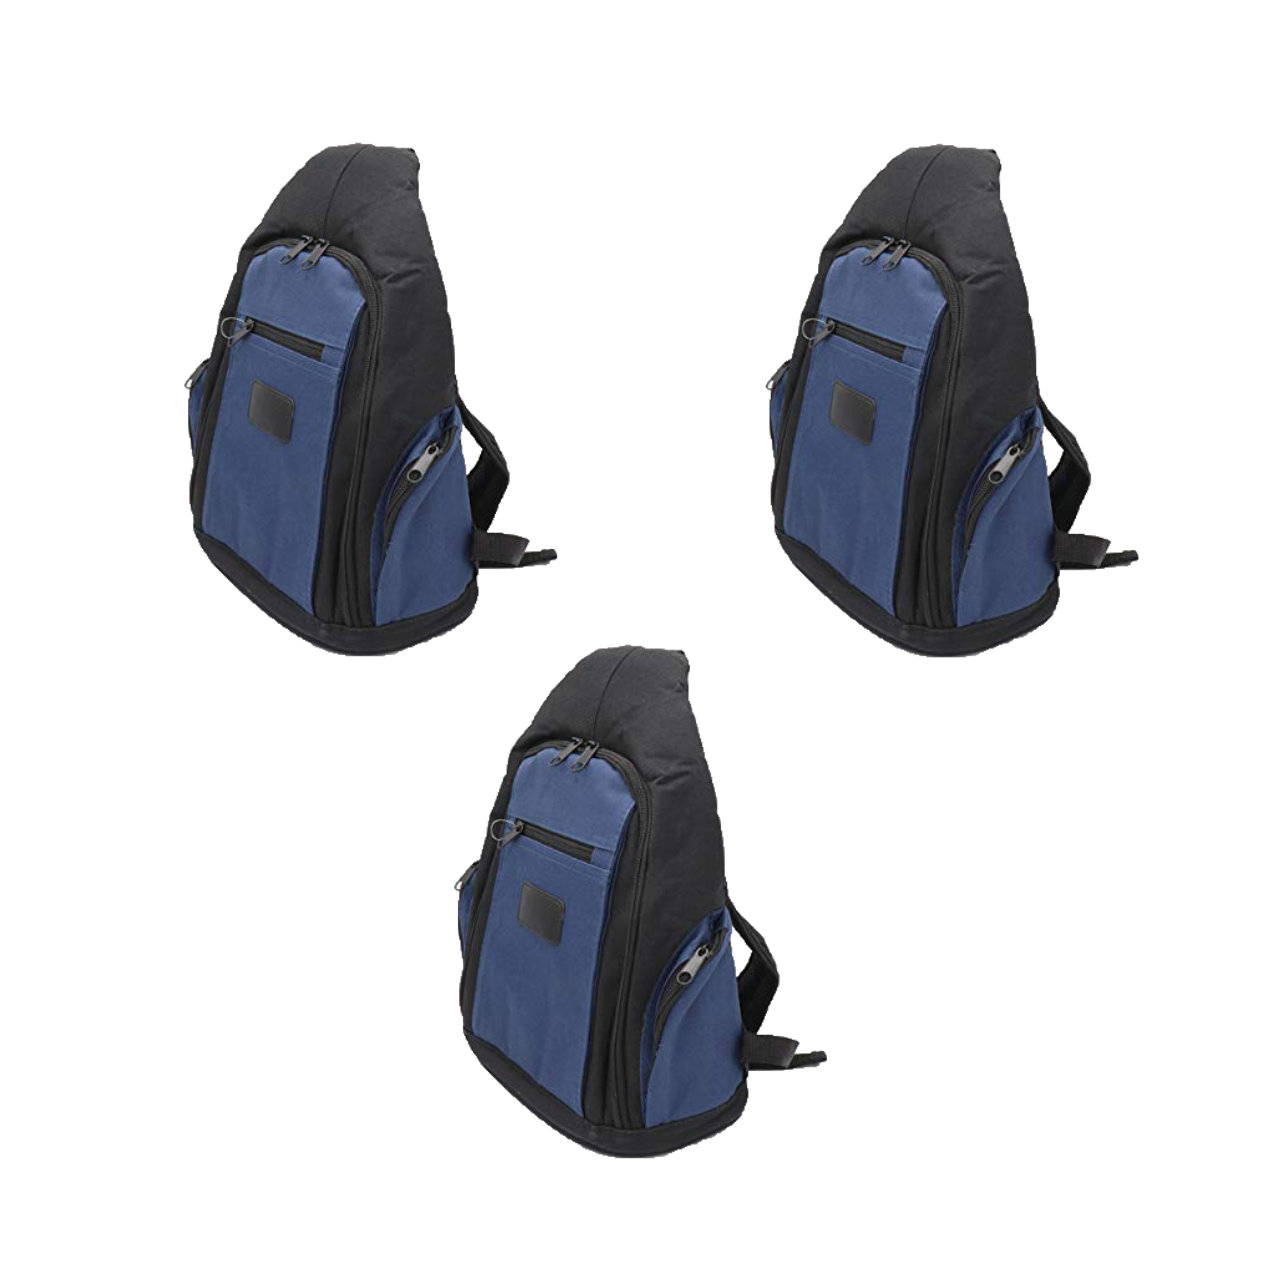 Solibag Shoulder Case -8004 Pack Of 3Pcs Camera Bags Camera Bags